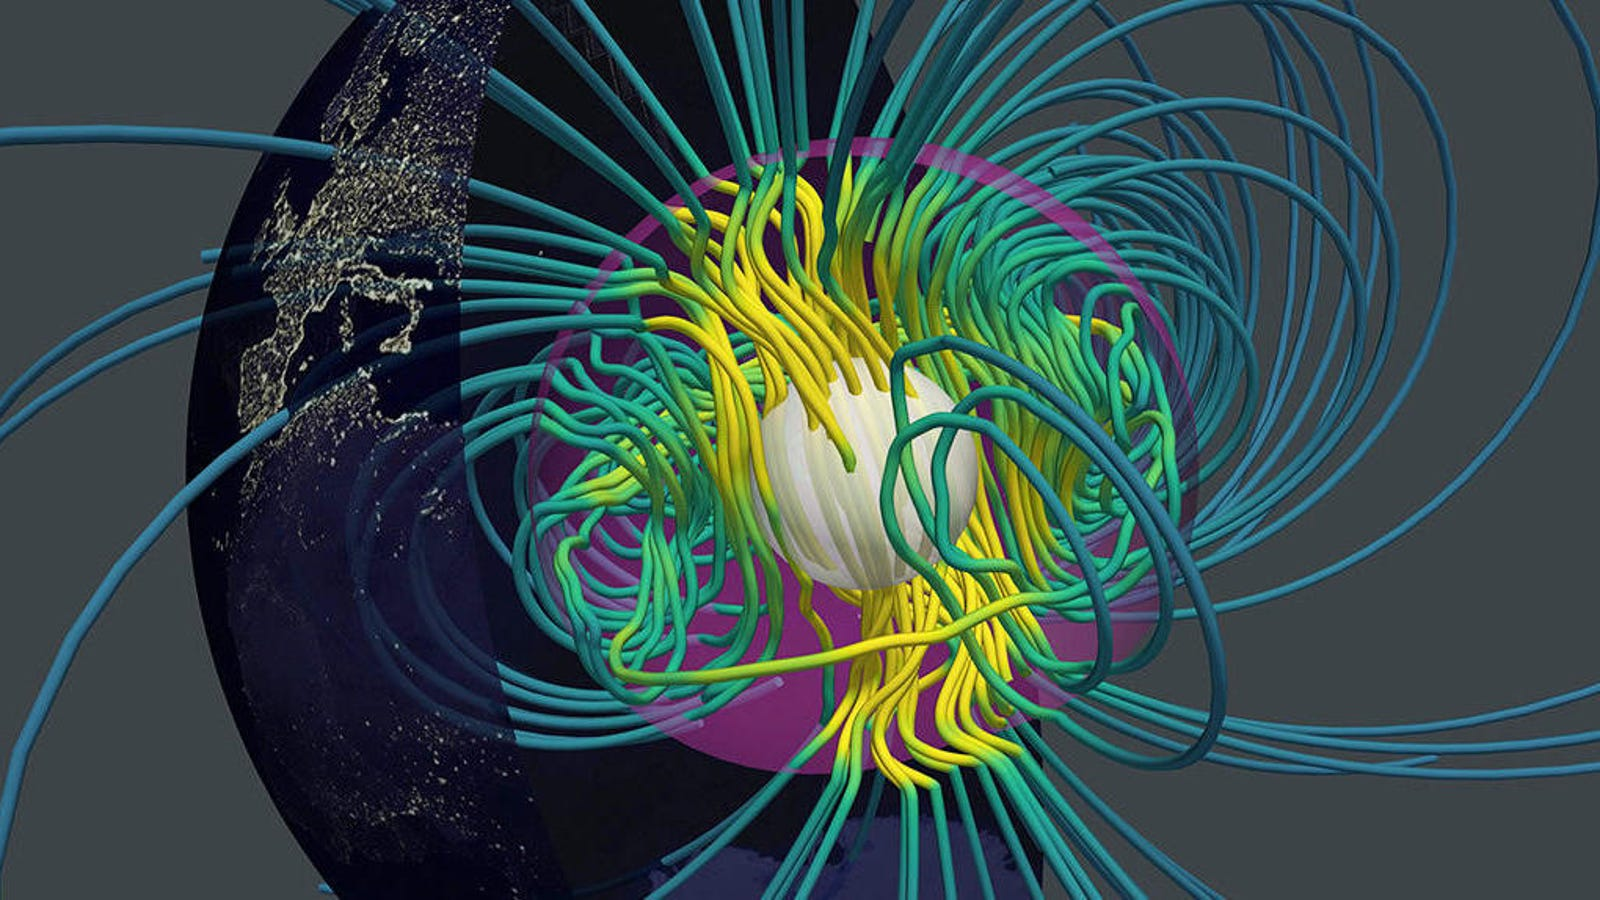 Hypnotic Video Simulates How Earth Gets Its Magnetic Field